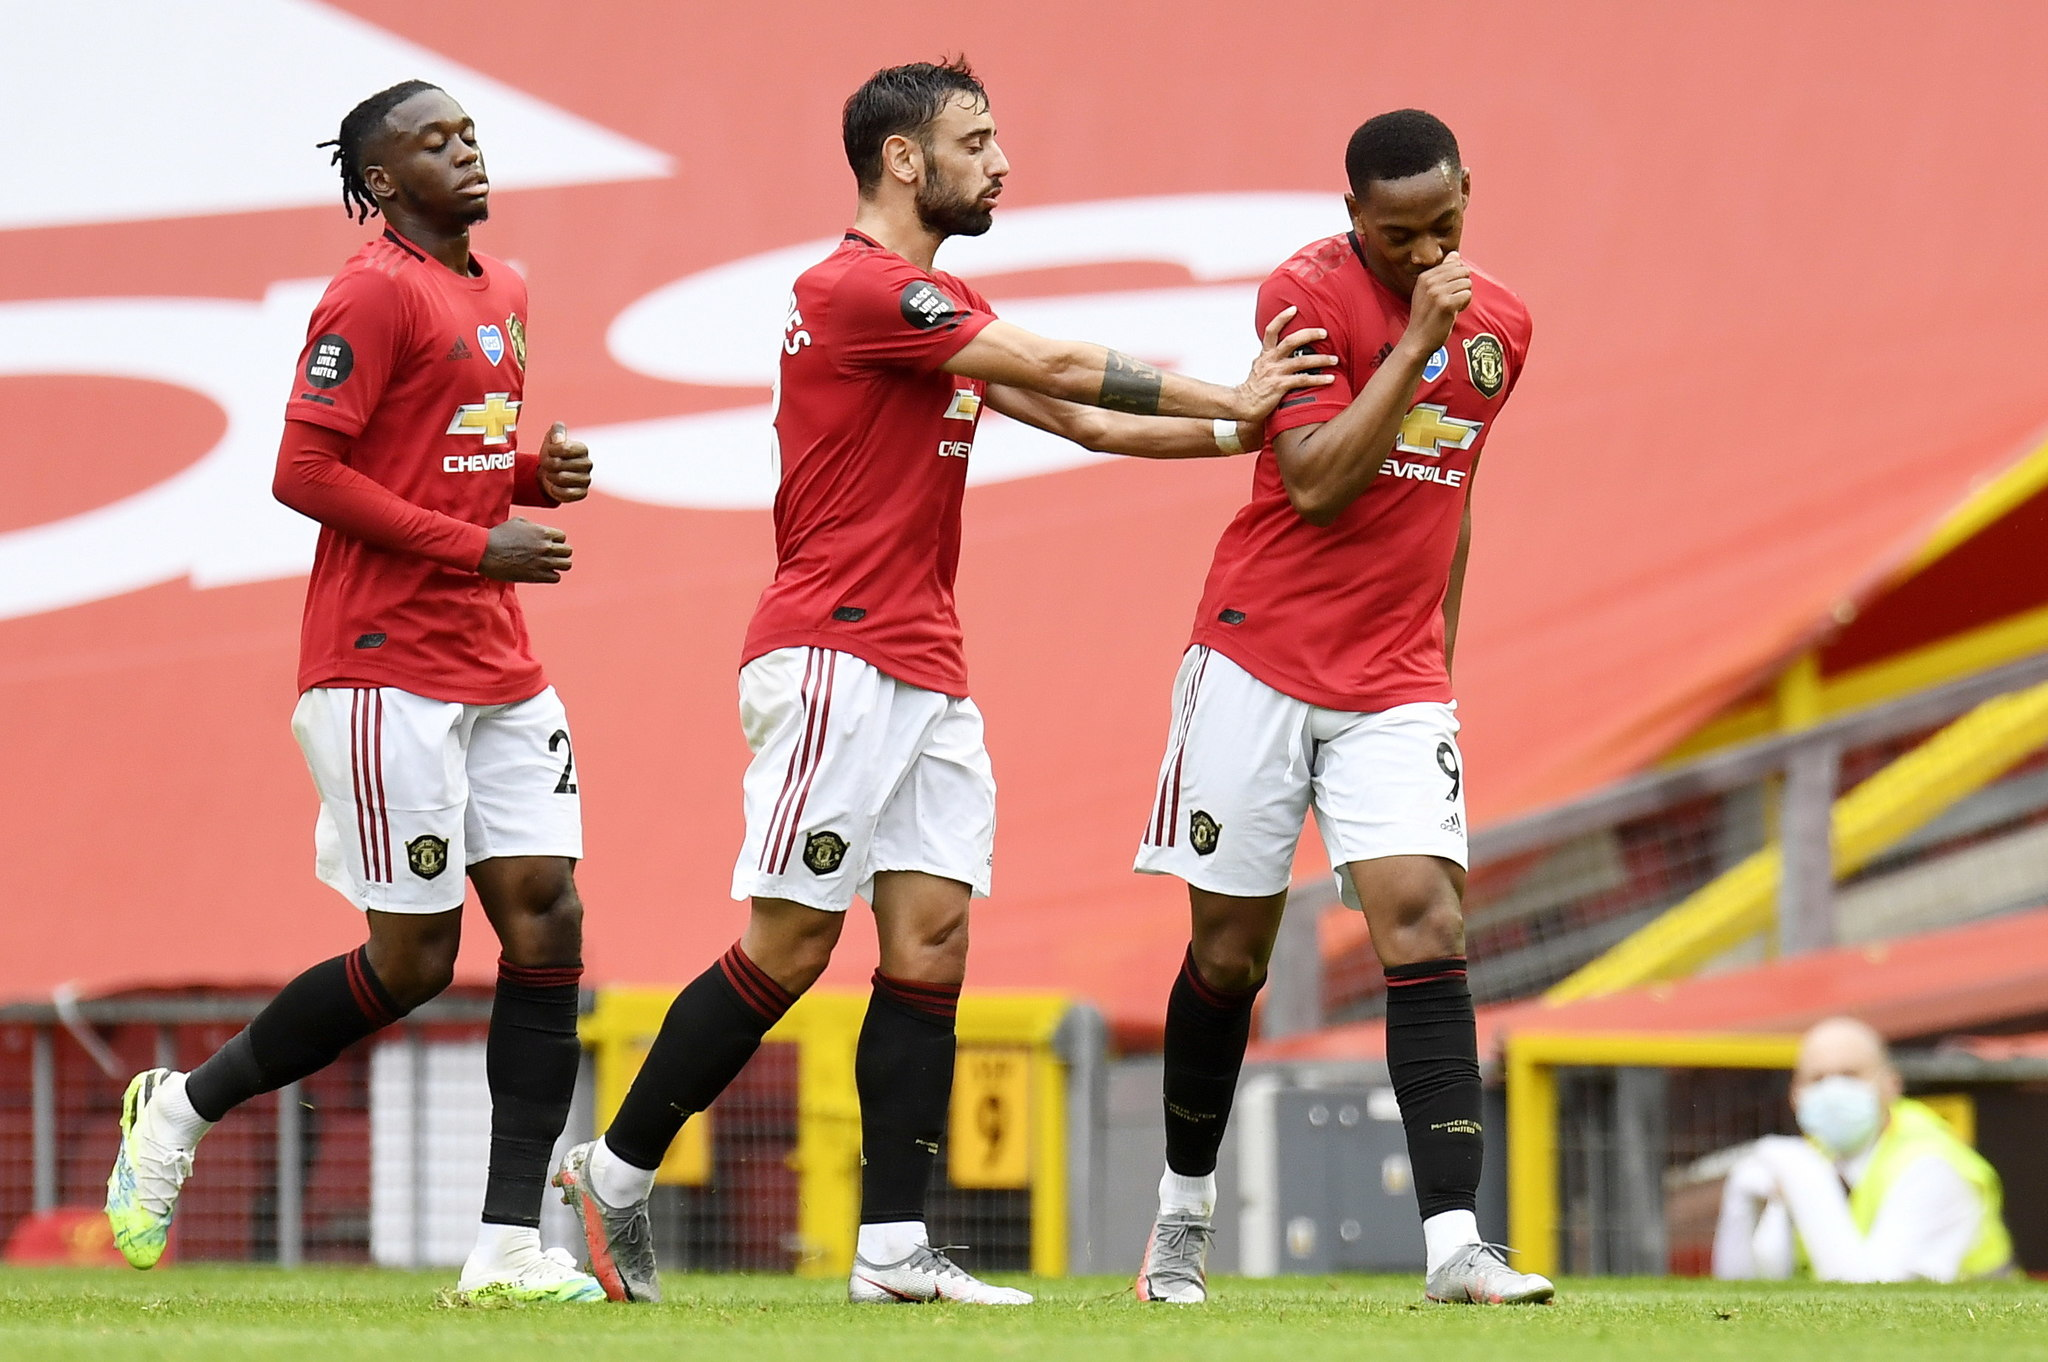 Manchester (United Kingdom), 04/07/2020.- Anthony lt;HIT gt;Martial lt;/HIT gt; (R) of Manchester United celebrates with teammates after scoring his teams third goal during the English Premier League match between Manchester United and AFC Bournemouth in Manchester, Britain, 04 July 2020. (Reino Unido) EFE/EPA/Peter Powell/NMC/Pool EDITORIAL USE ONLY. No use with unauthorized audio, video, data, fixture lists, club/league logos or live services. Online in-match use limited to 120 images, no video emulation. No use in betting, games or single club/league/player publications